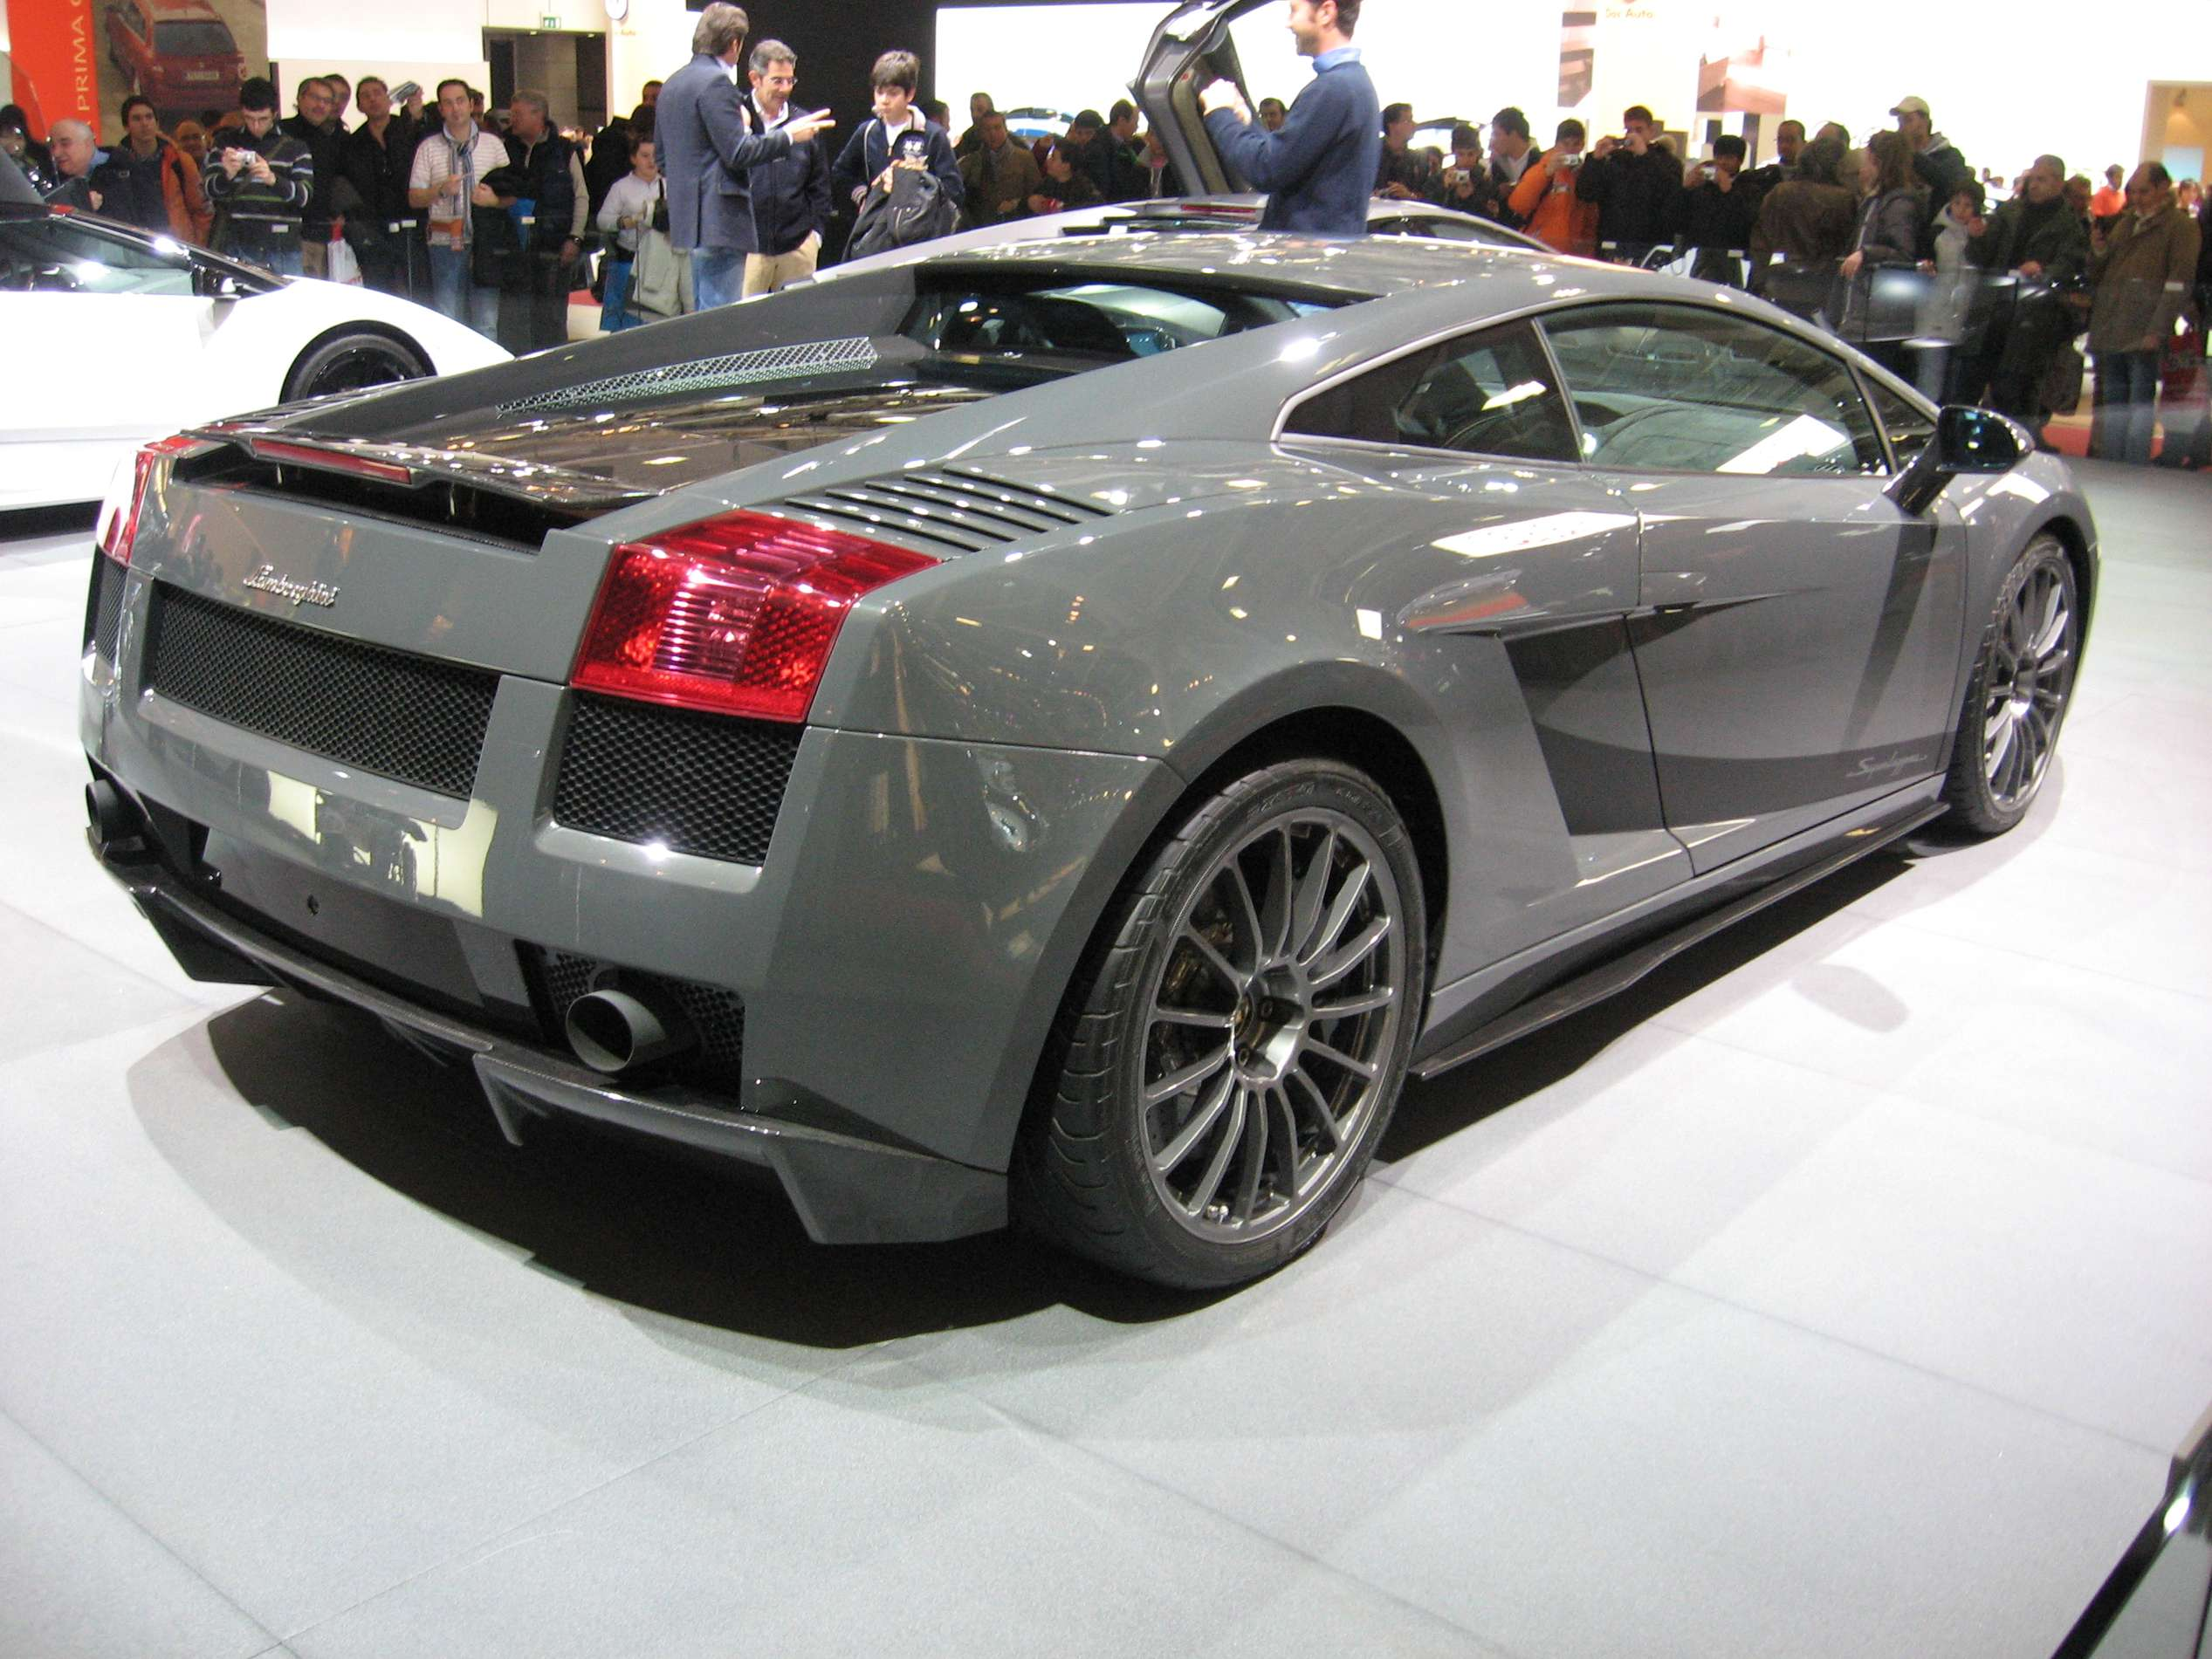 Lamborghini_Gallardo_Superleggera